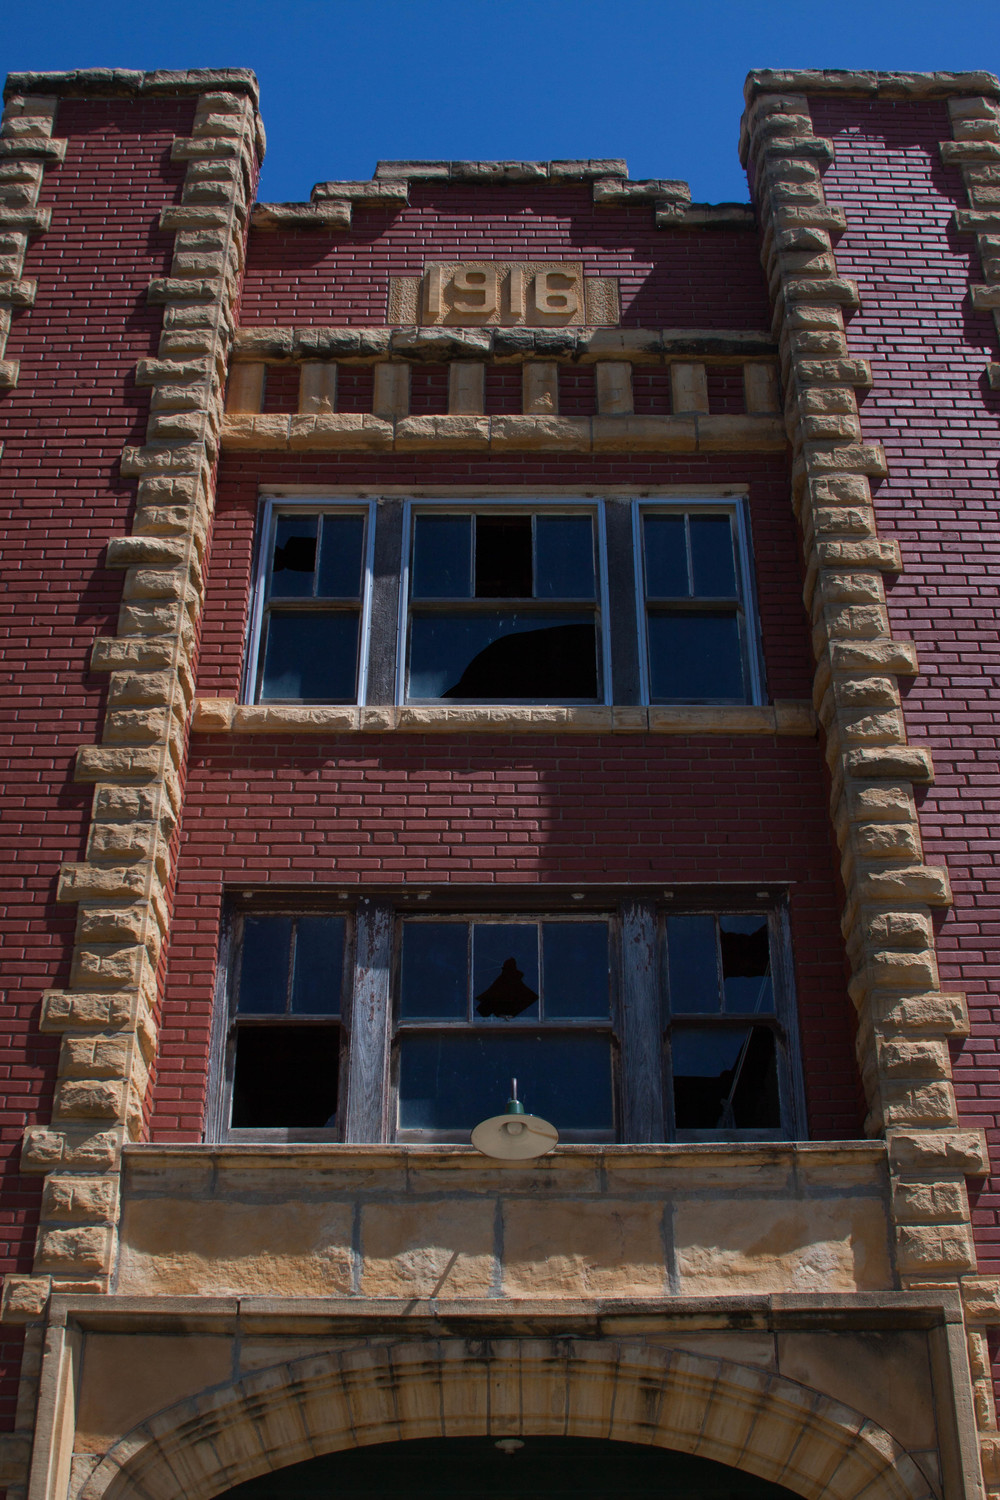 Another view of the old high school in Alexander, Kansas.